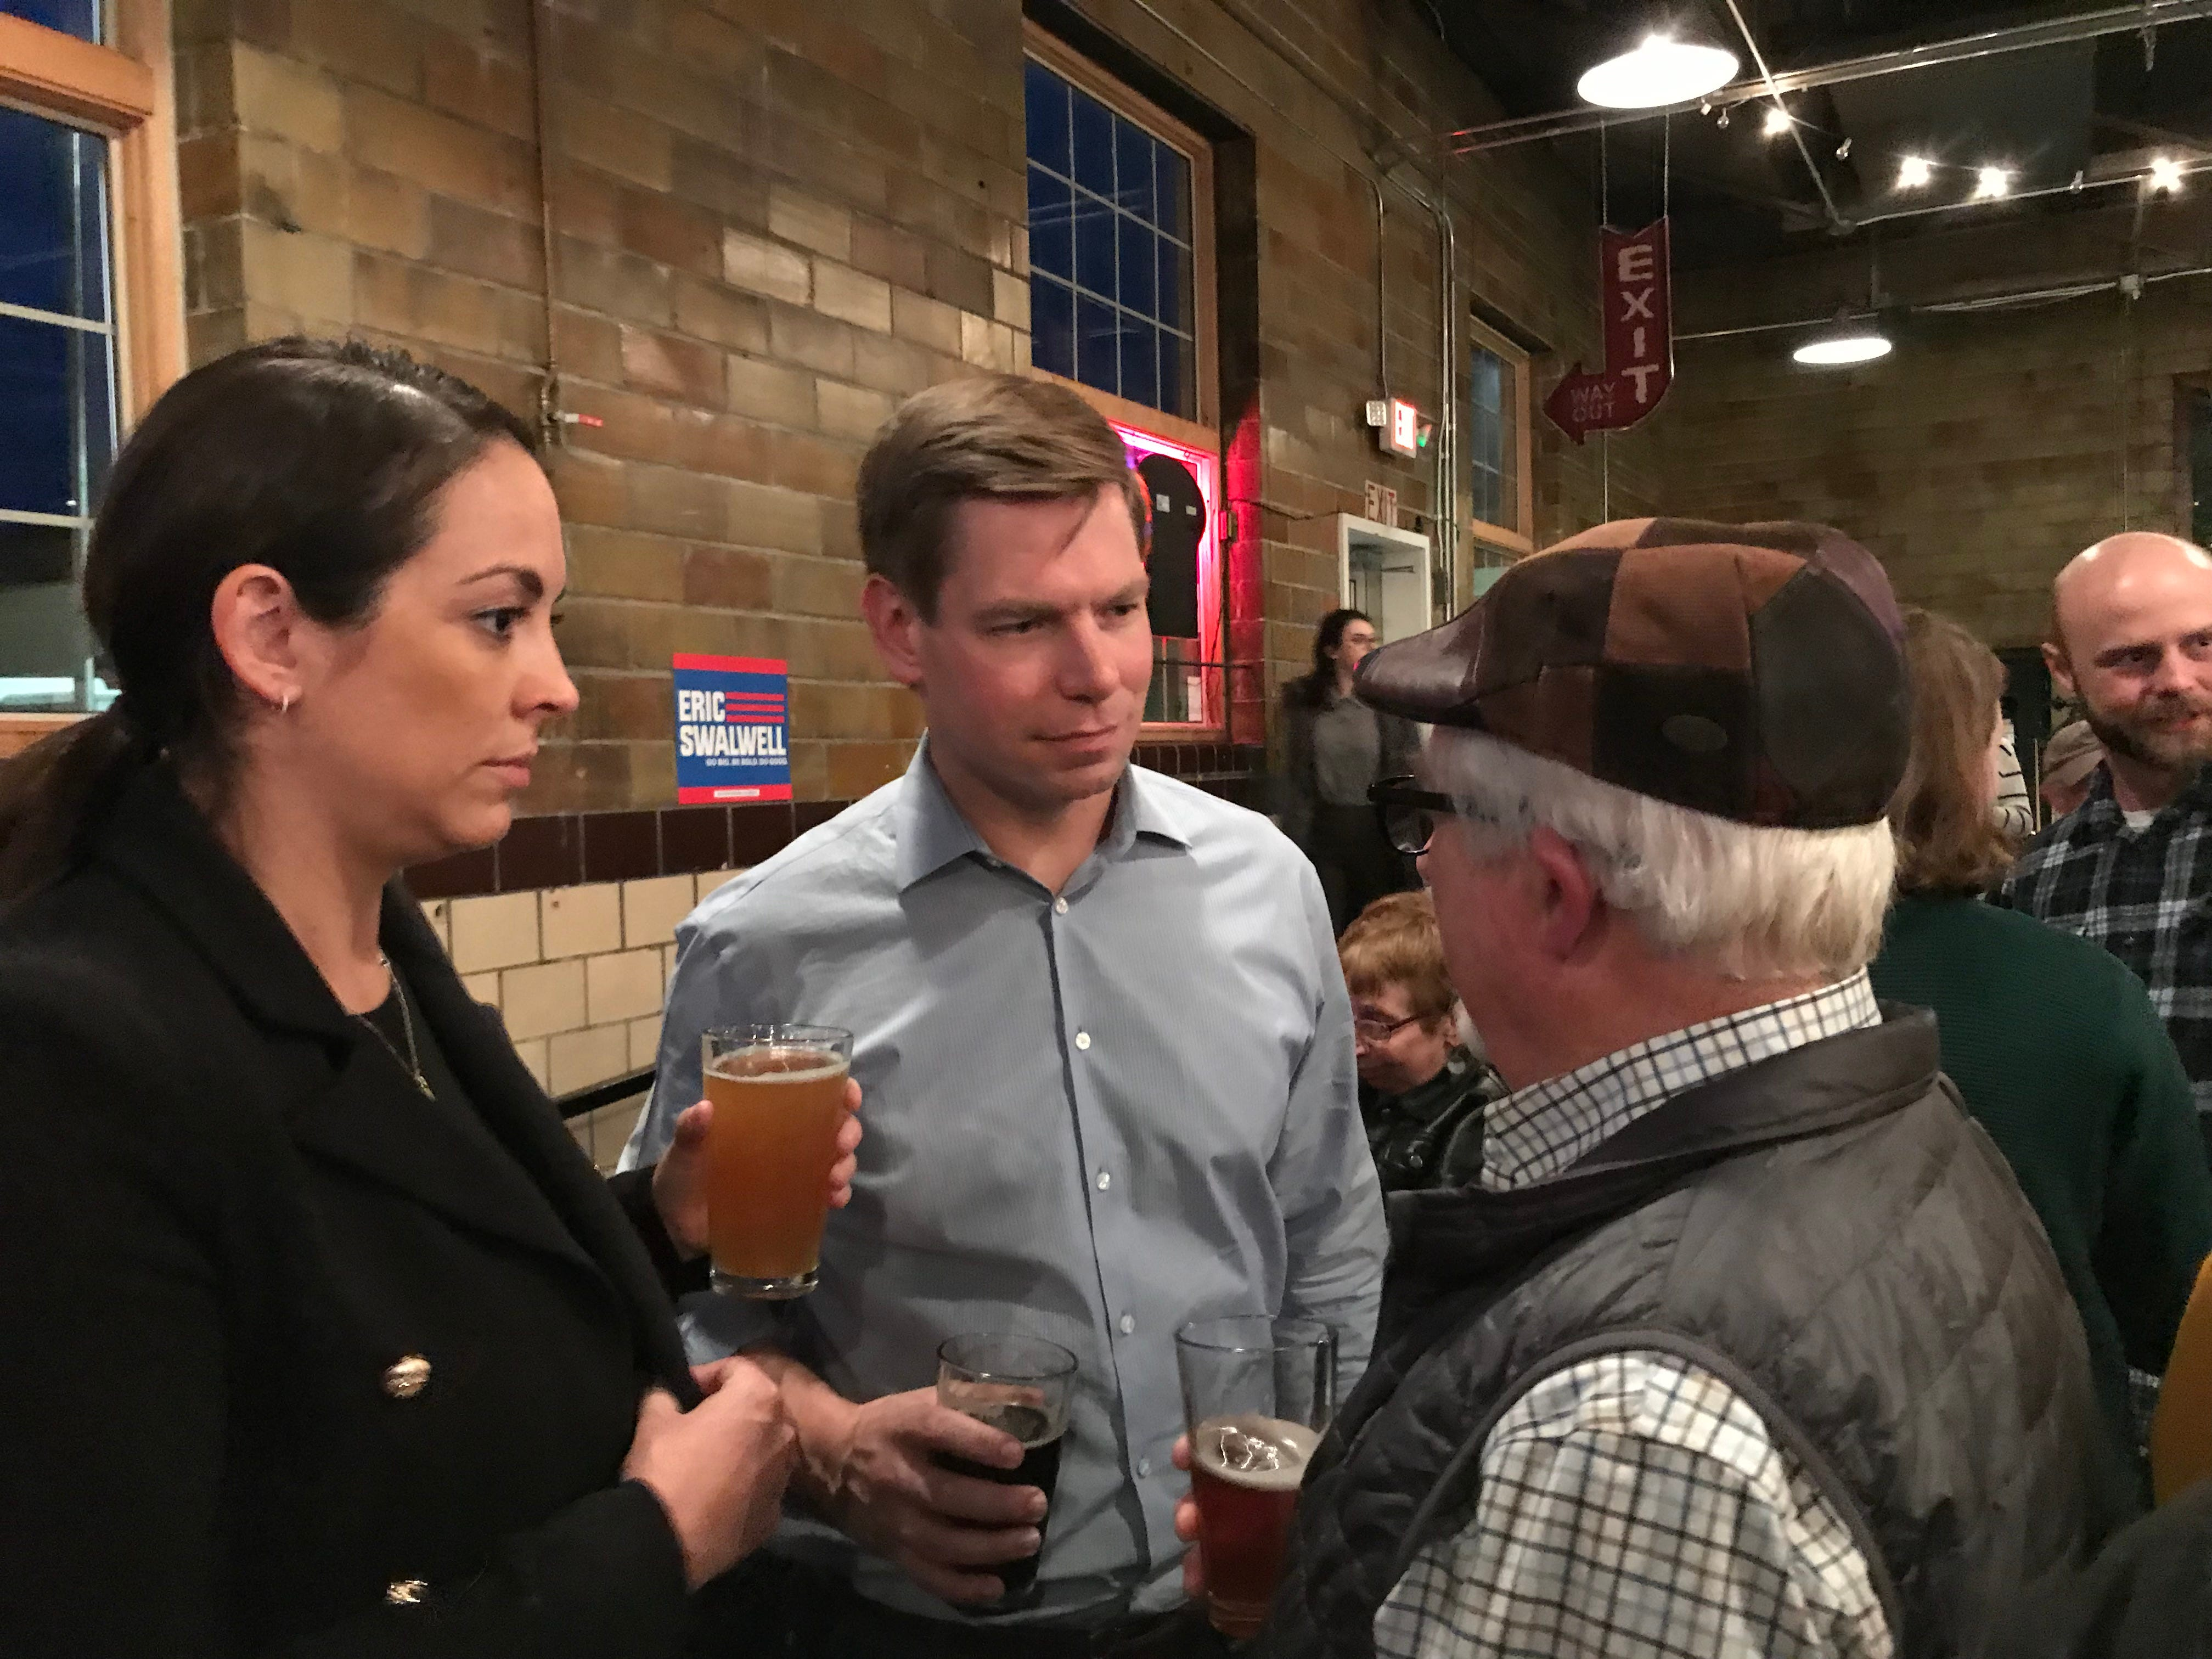 Eric Swalwell, middle, and his wife, Brittany, speak with John Klaus of Ames at Torrent Brewing in Ames Thursday night. Swalwell stopped in Ames for his first visit in Iowa since announcing his 2020 candidacy.